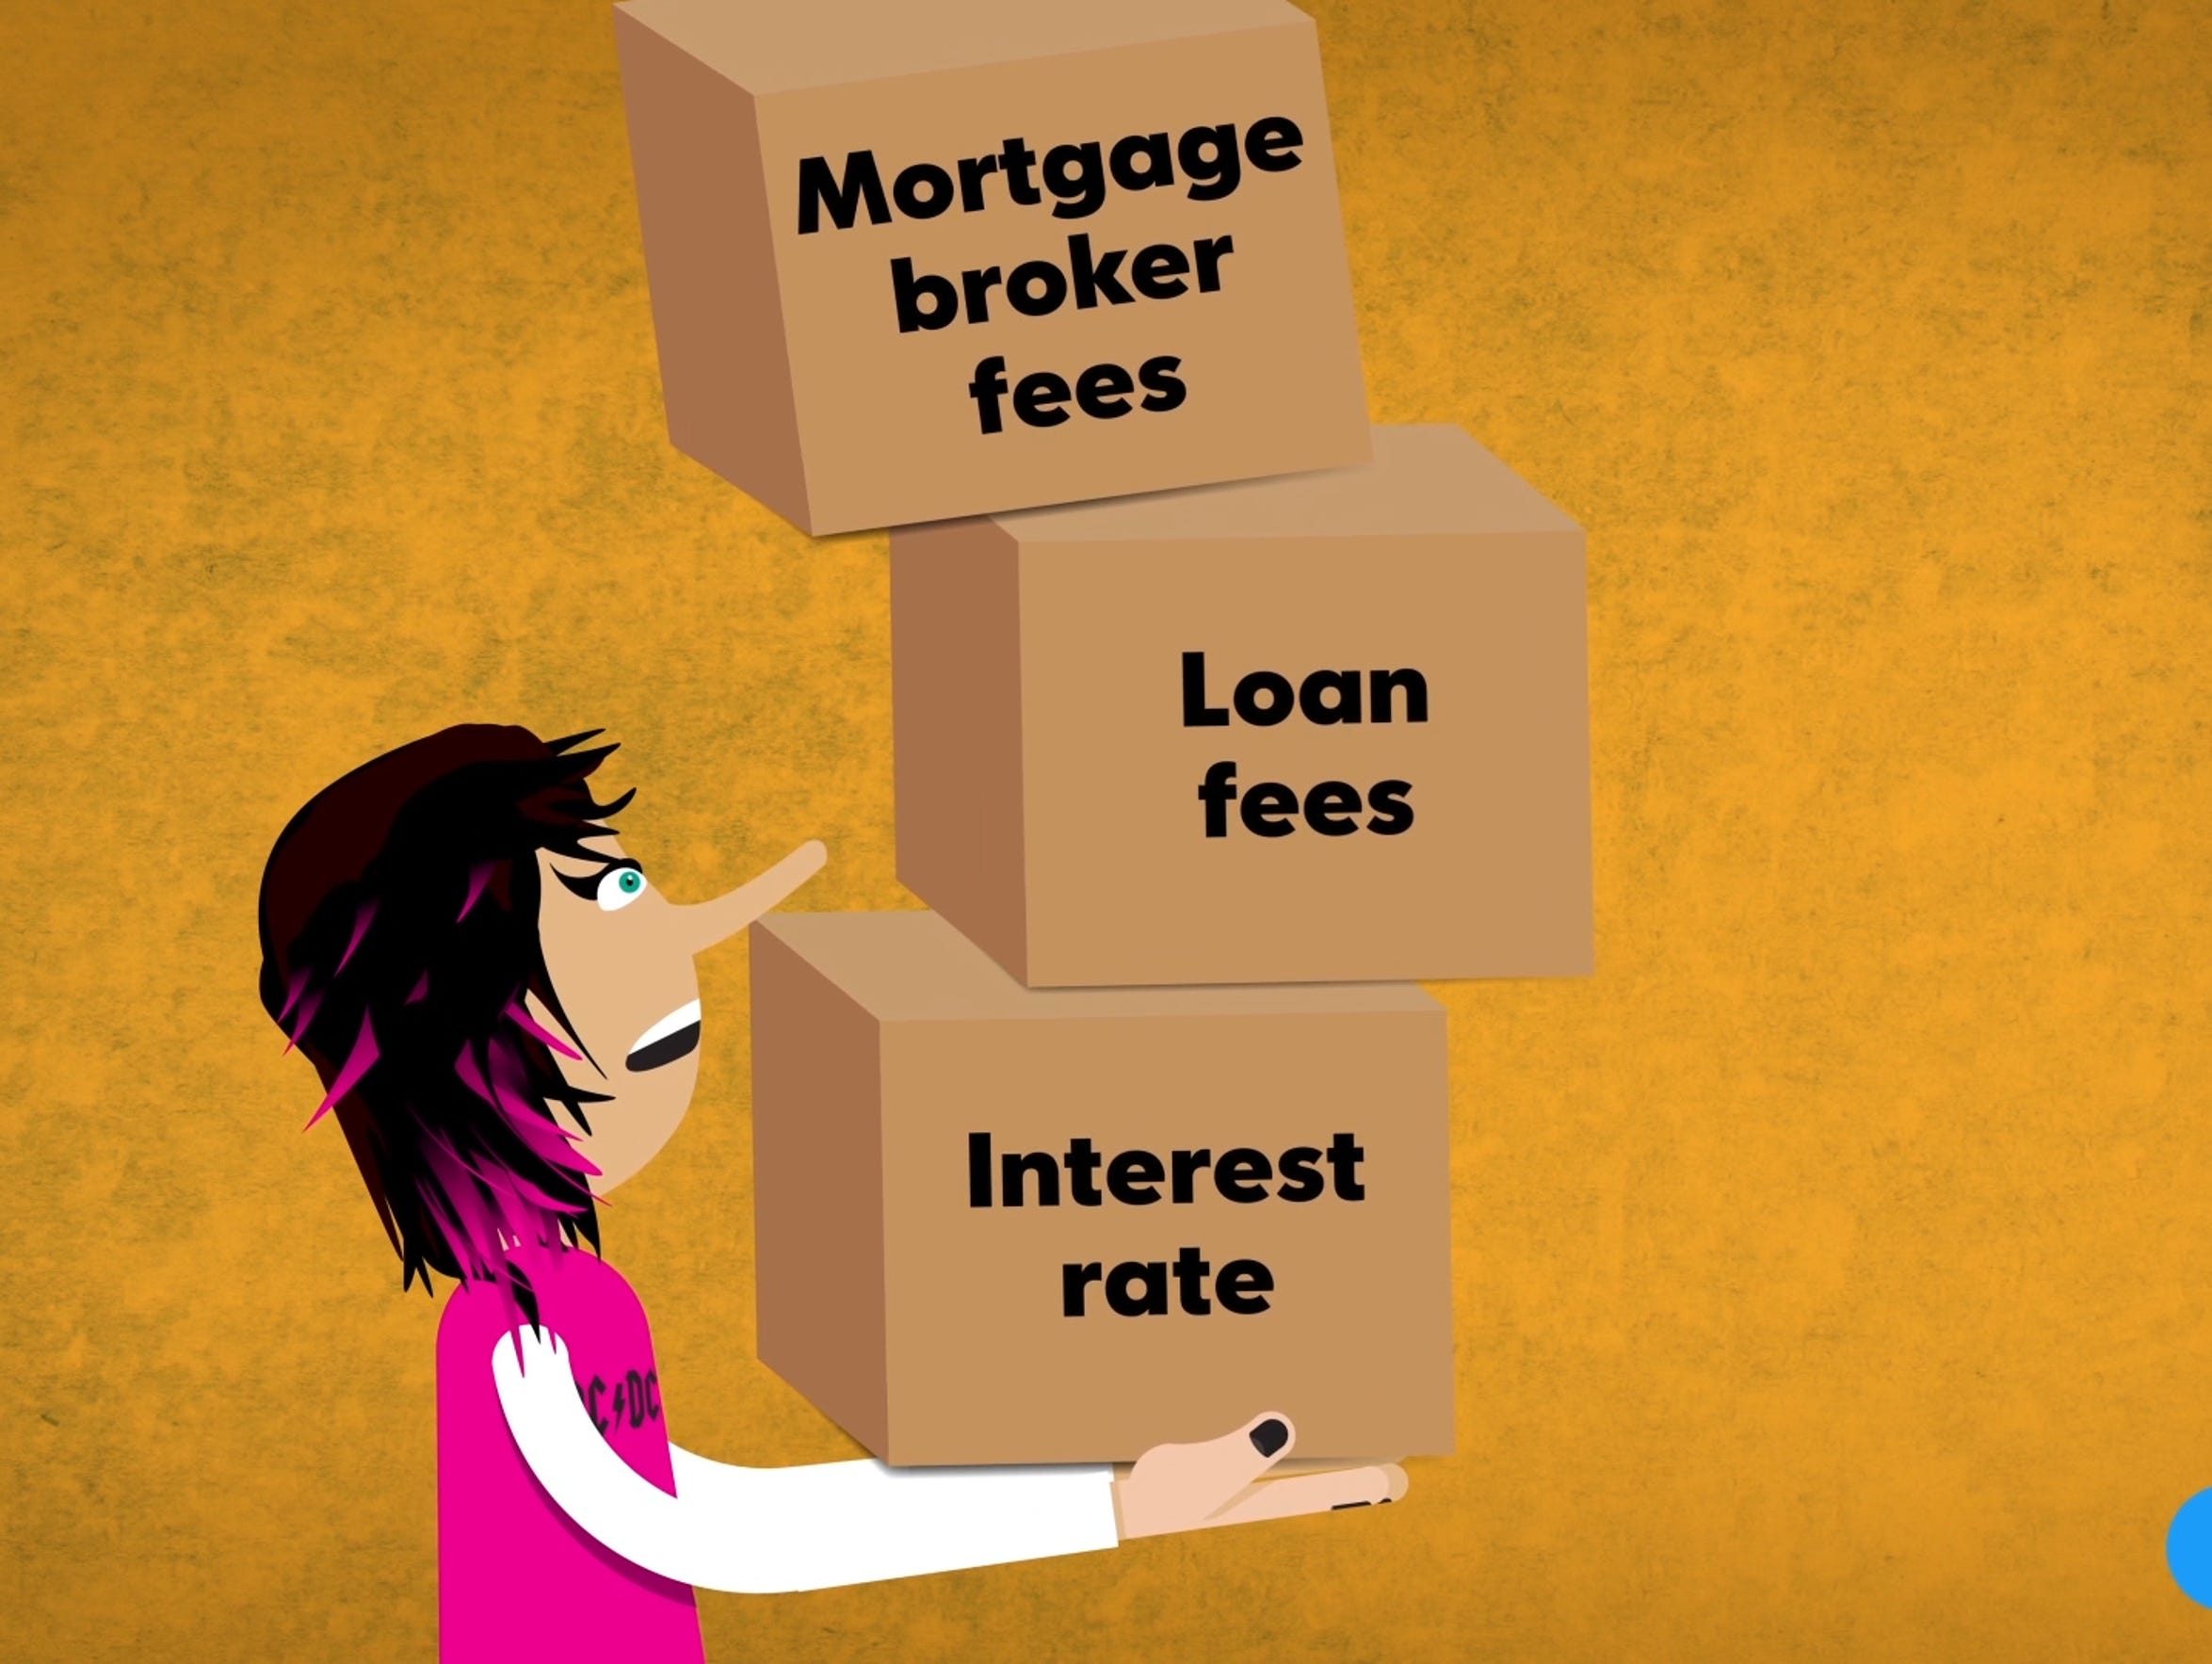 When buying a home it's important to understand all